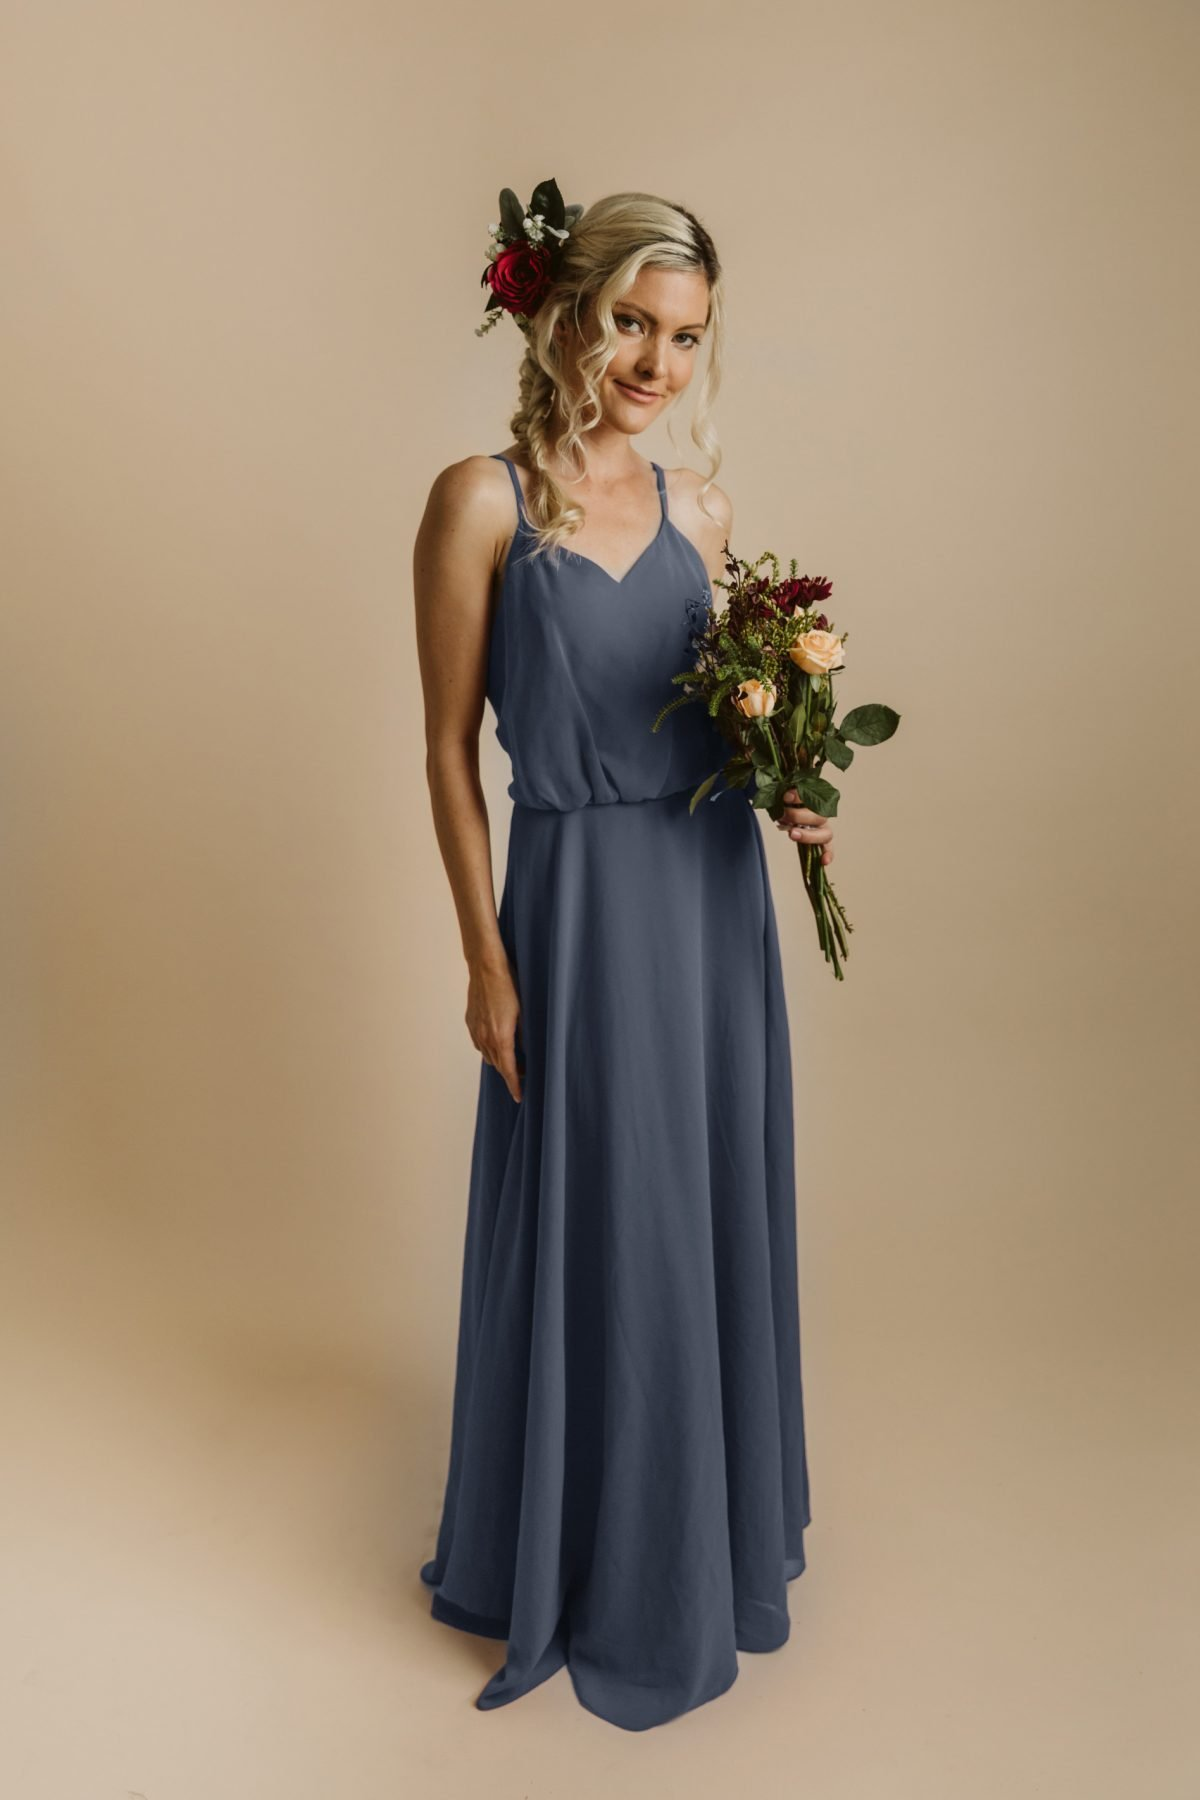 Chiffon Bridesmaids Dresses NZ